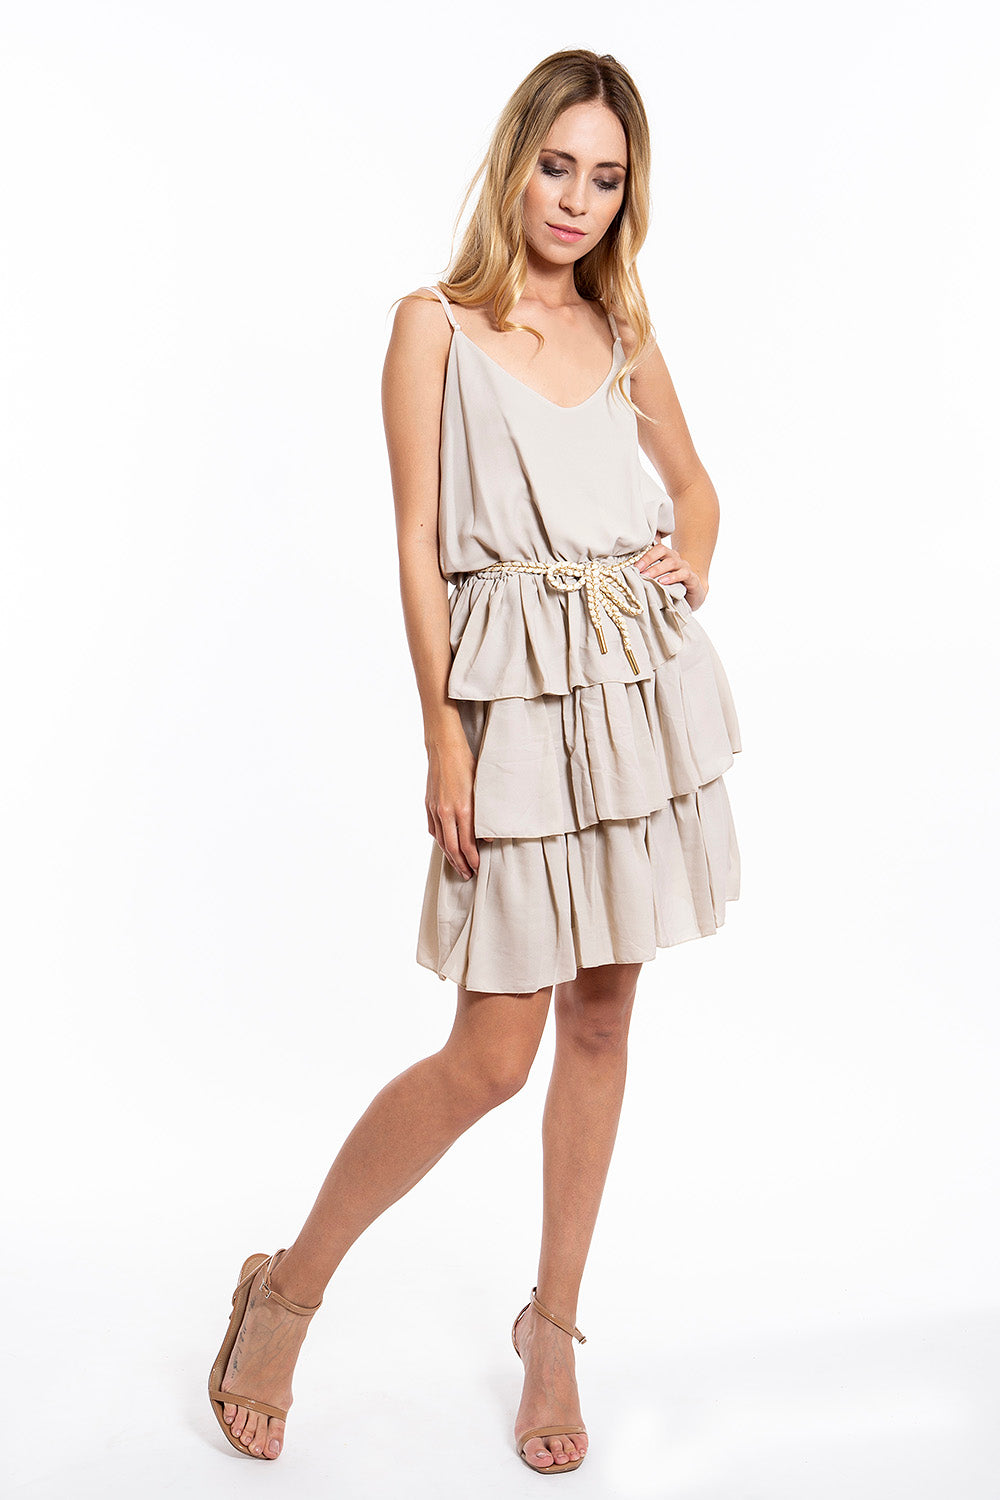 Akè cute dress with ruffles and robe belt